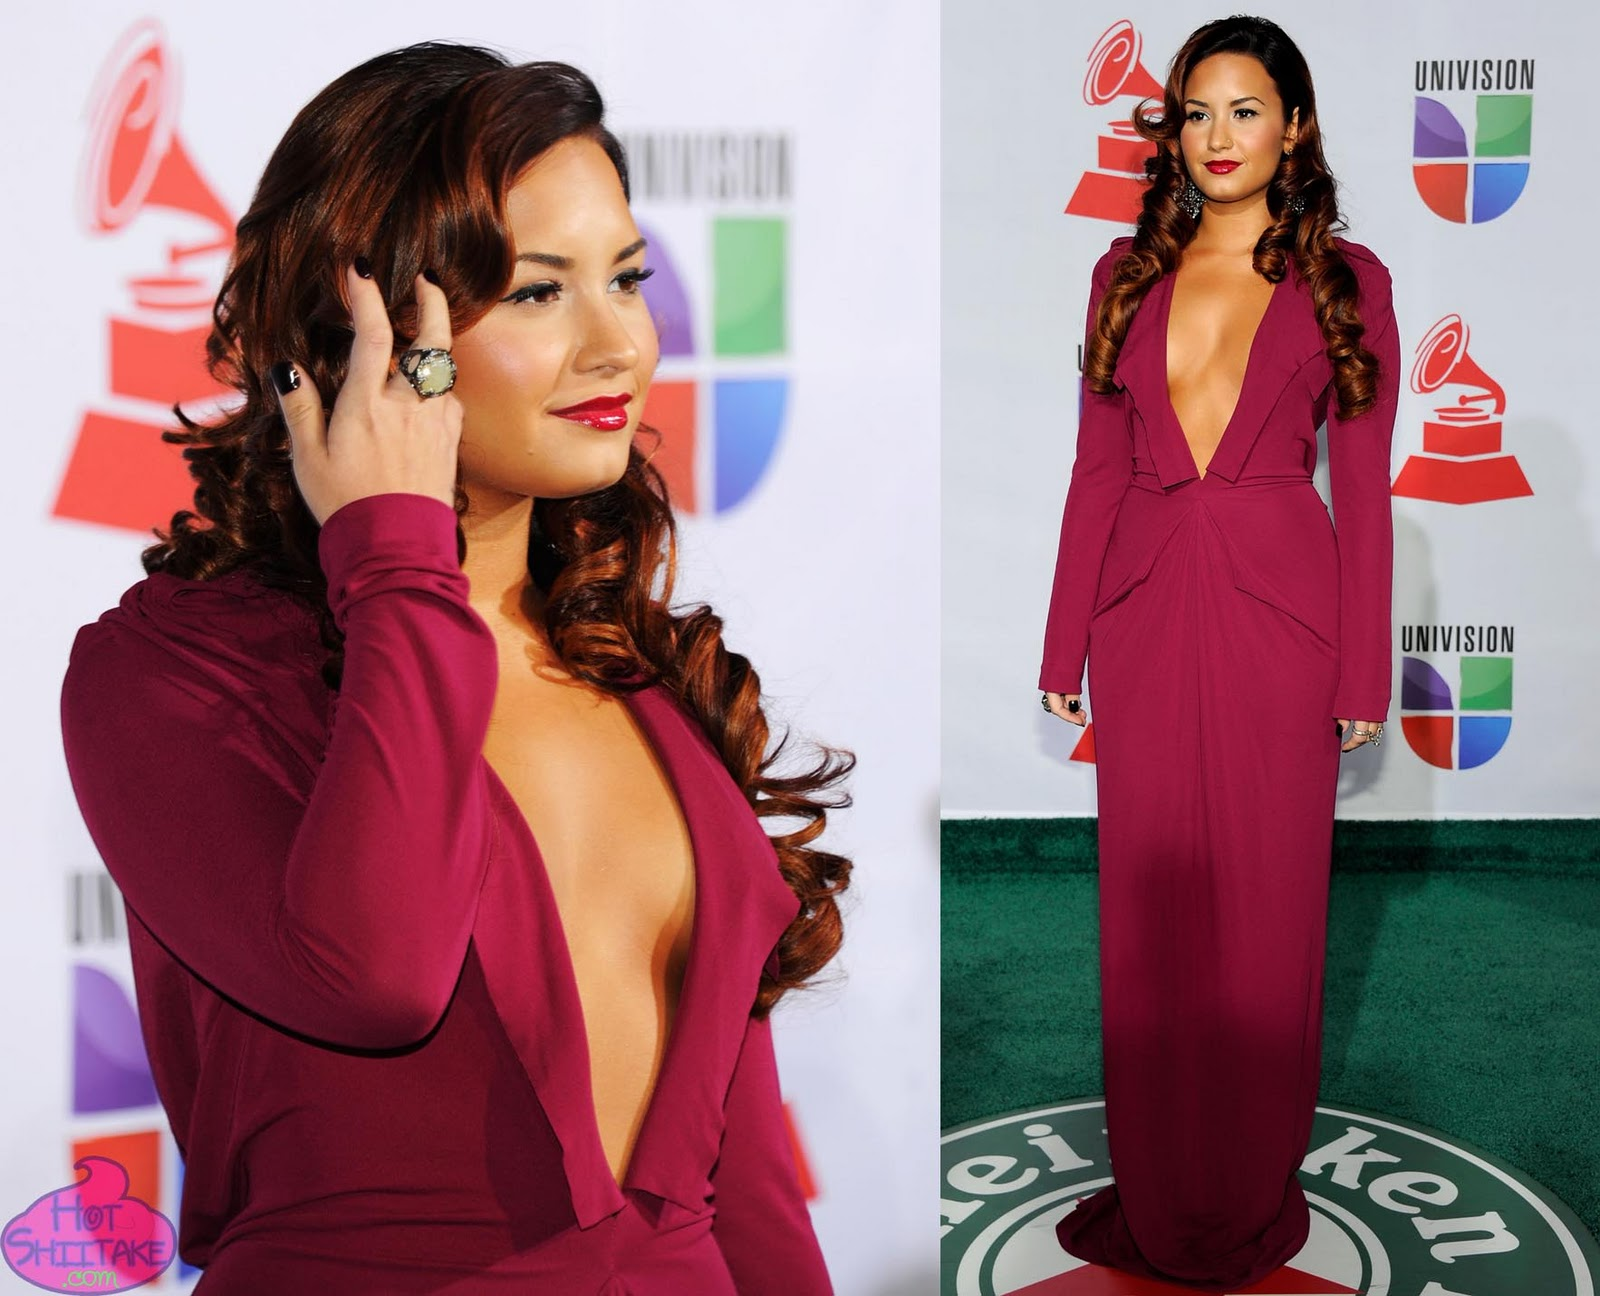 http://1.bp.blogspot.com/-lBAls4OSuu4/TsJwbQfs7rI/AAAAAAAAA5g/W7TjAq8ihQk/s1600/demi-lovato-boobs-dress-latin-grammy-awards.jpg